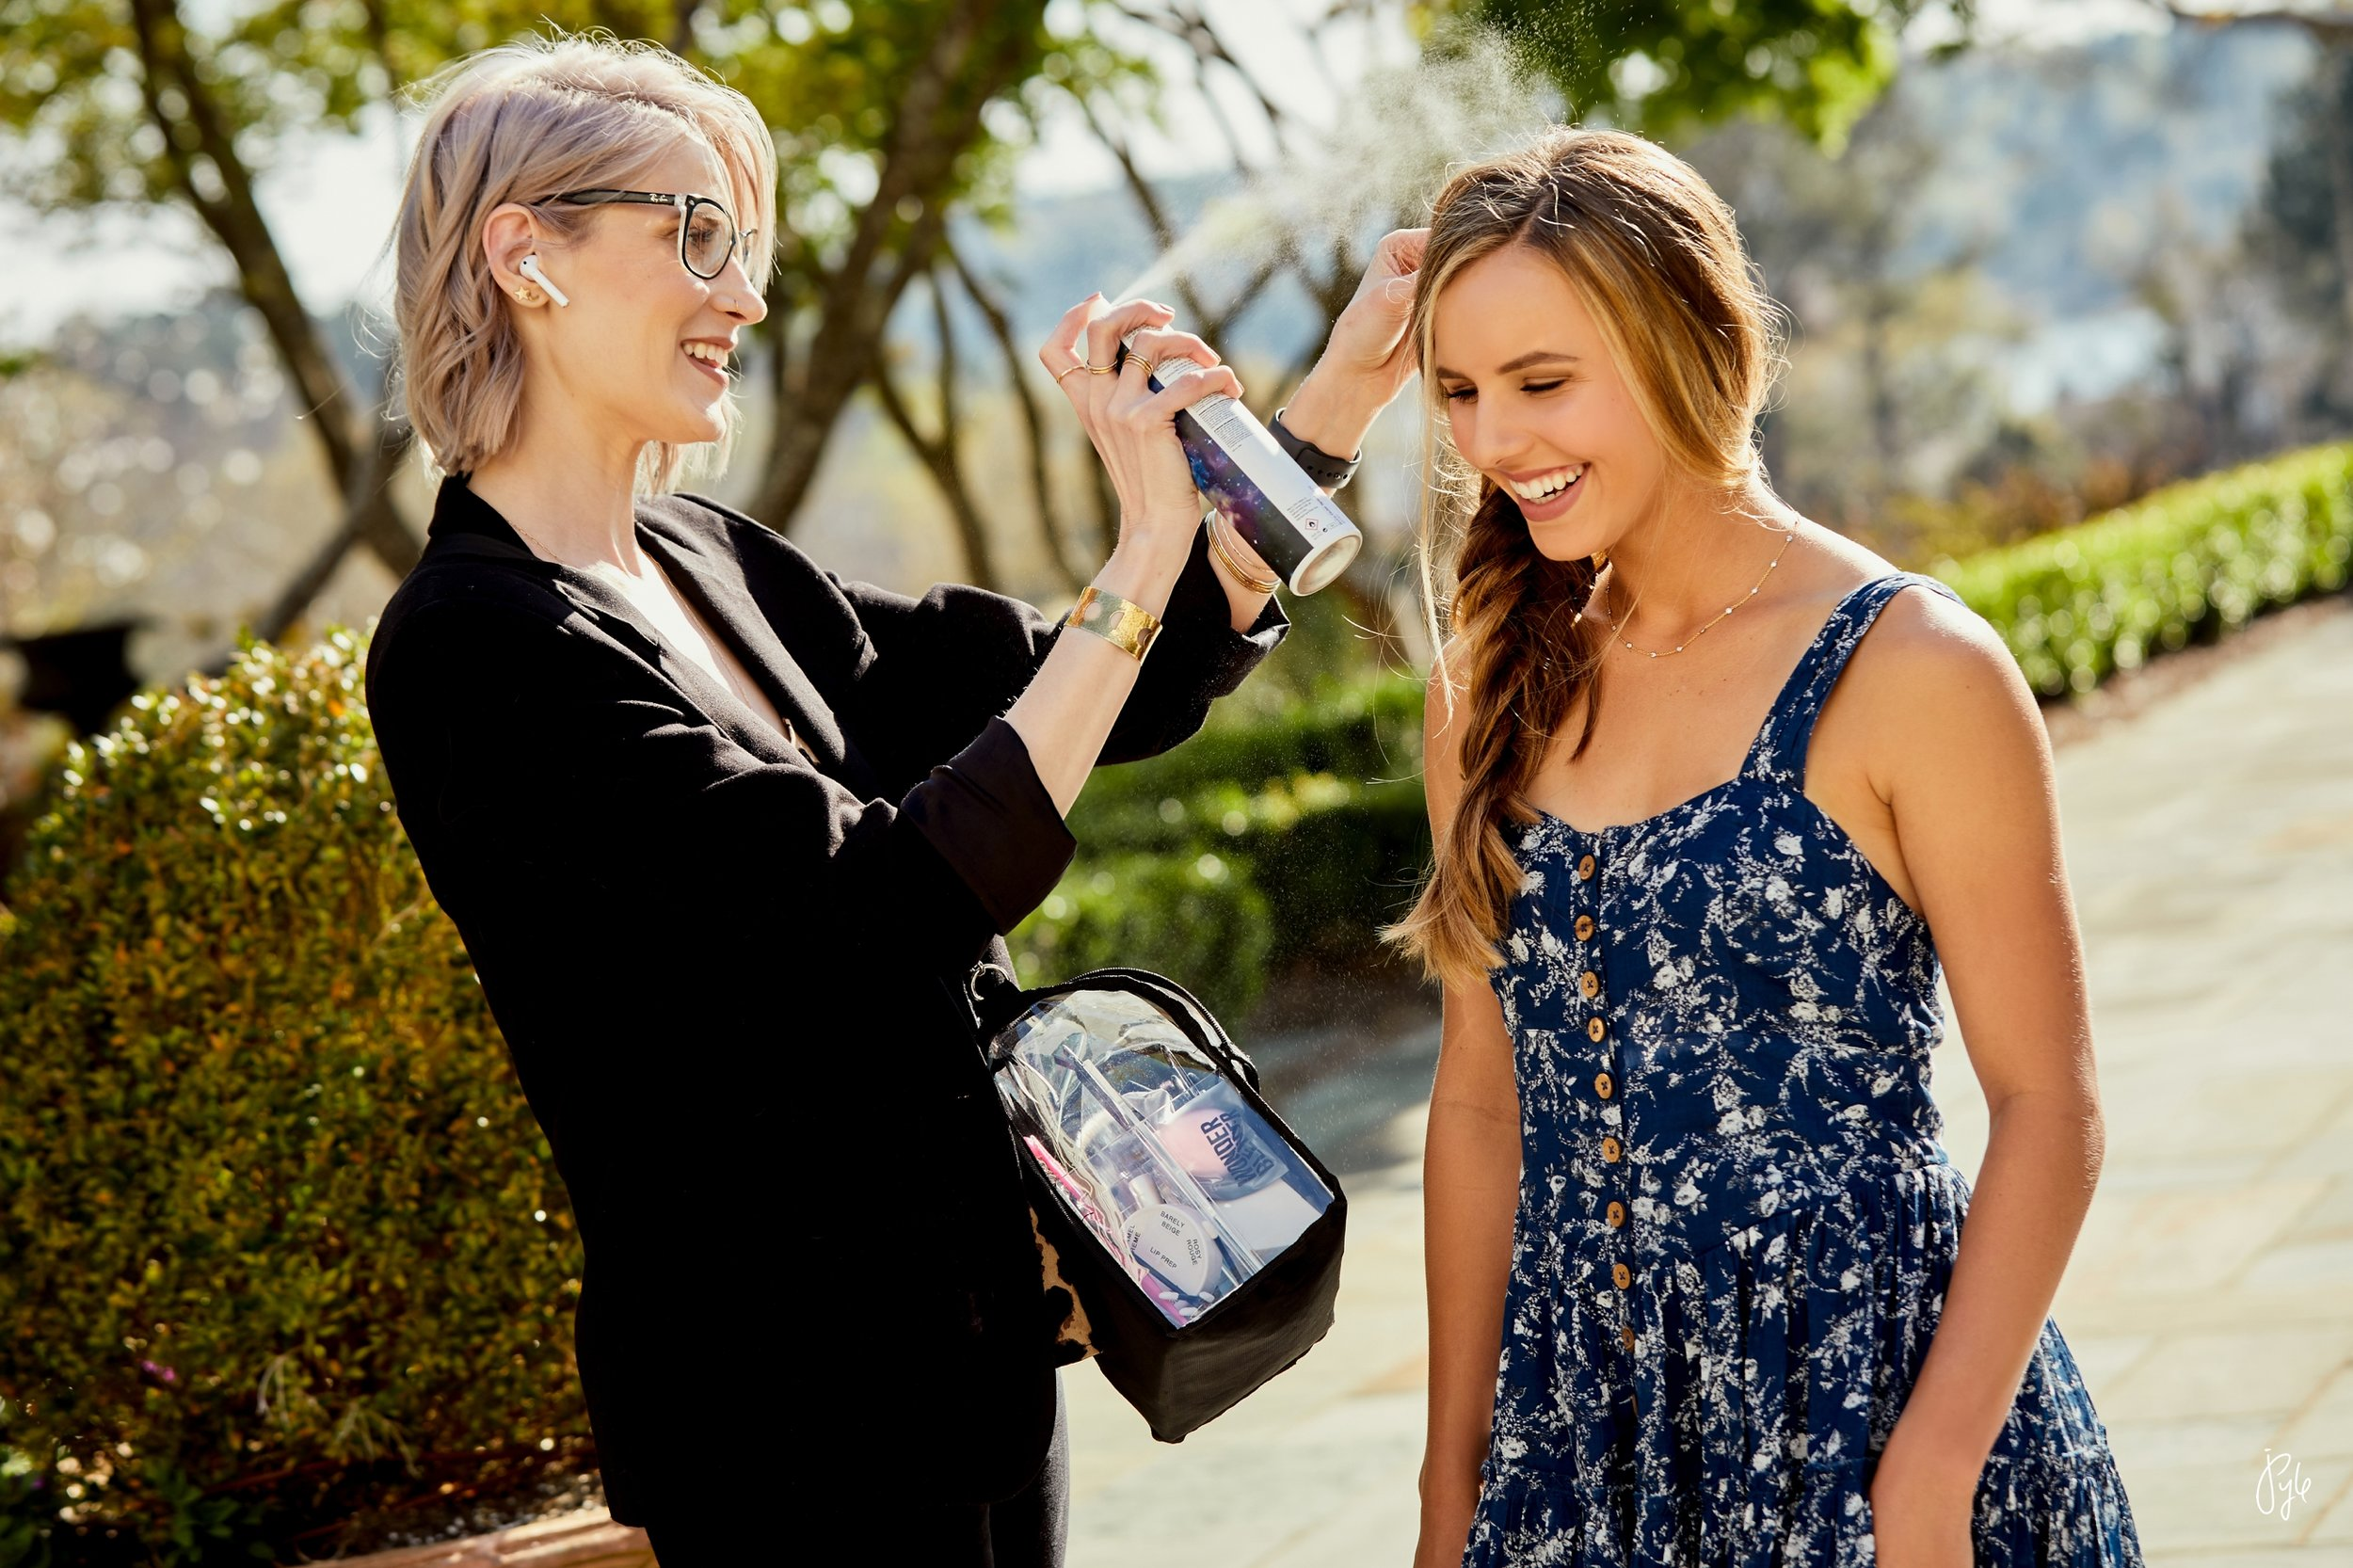 Lauryl Estelle on location with Betsy.